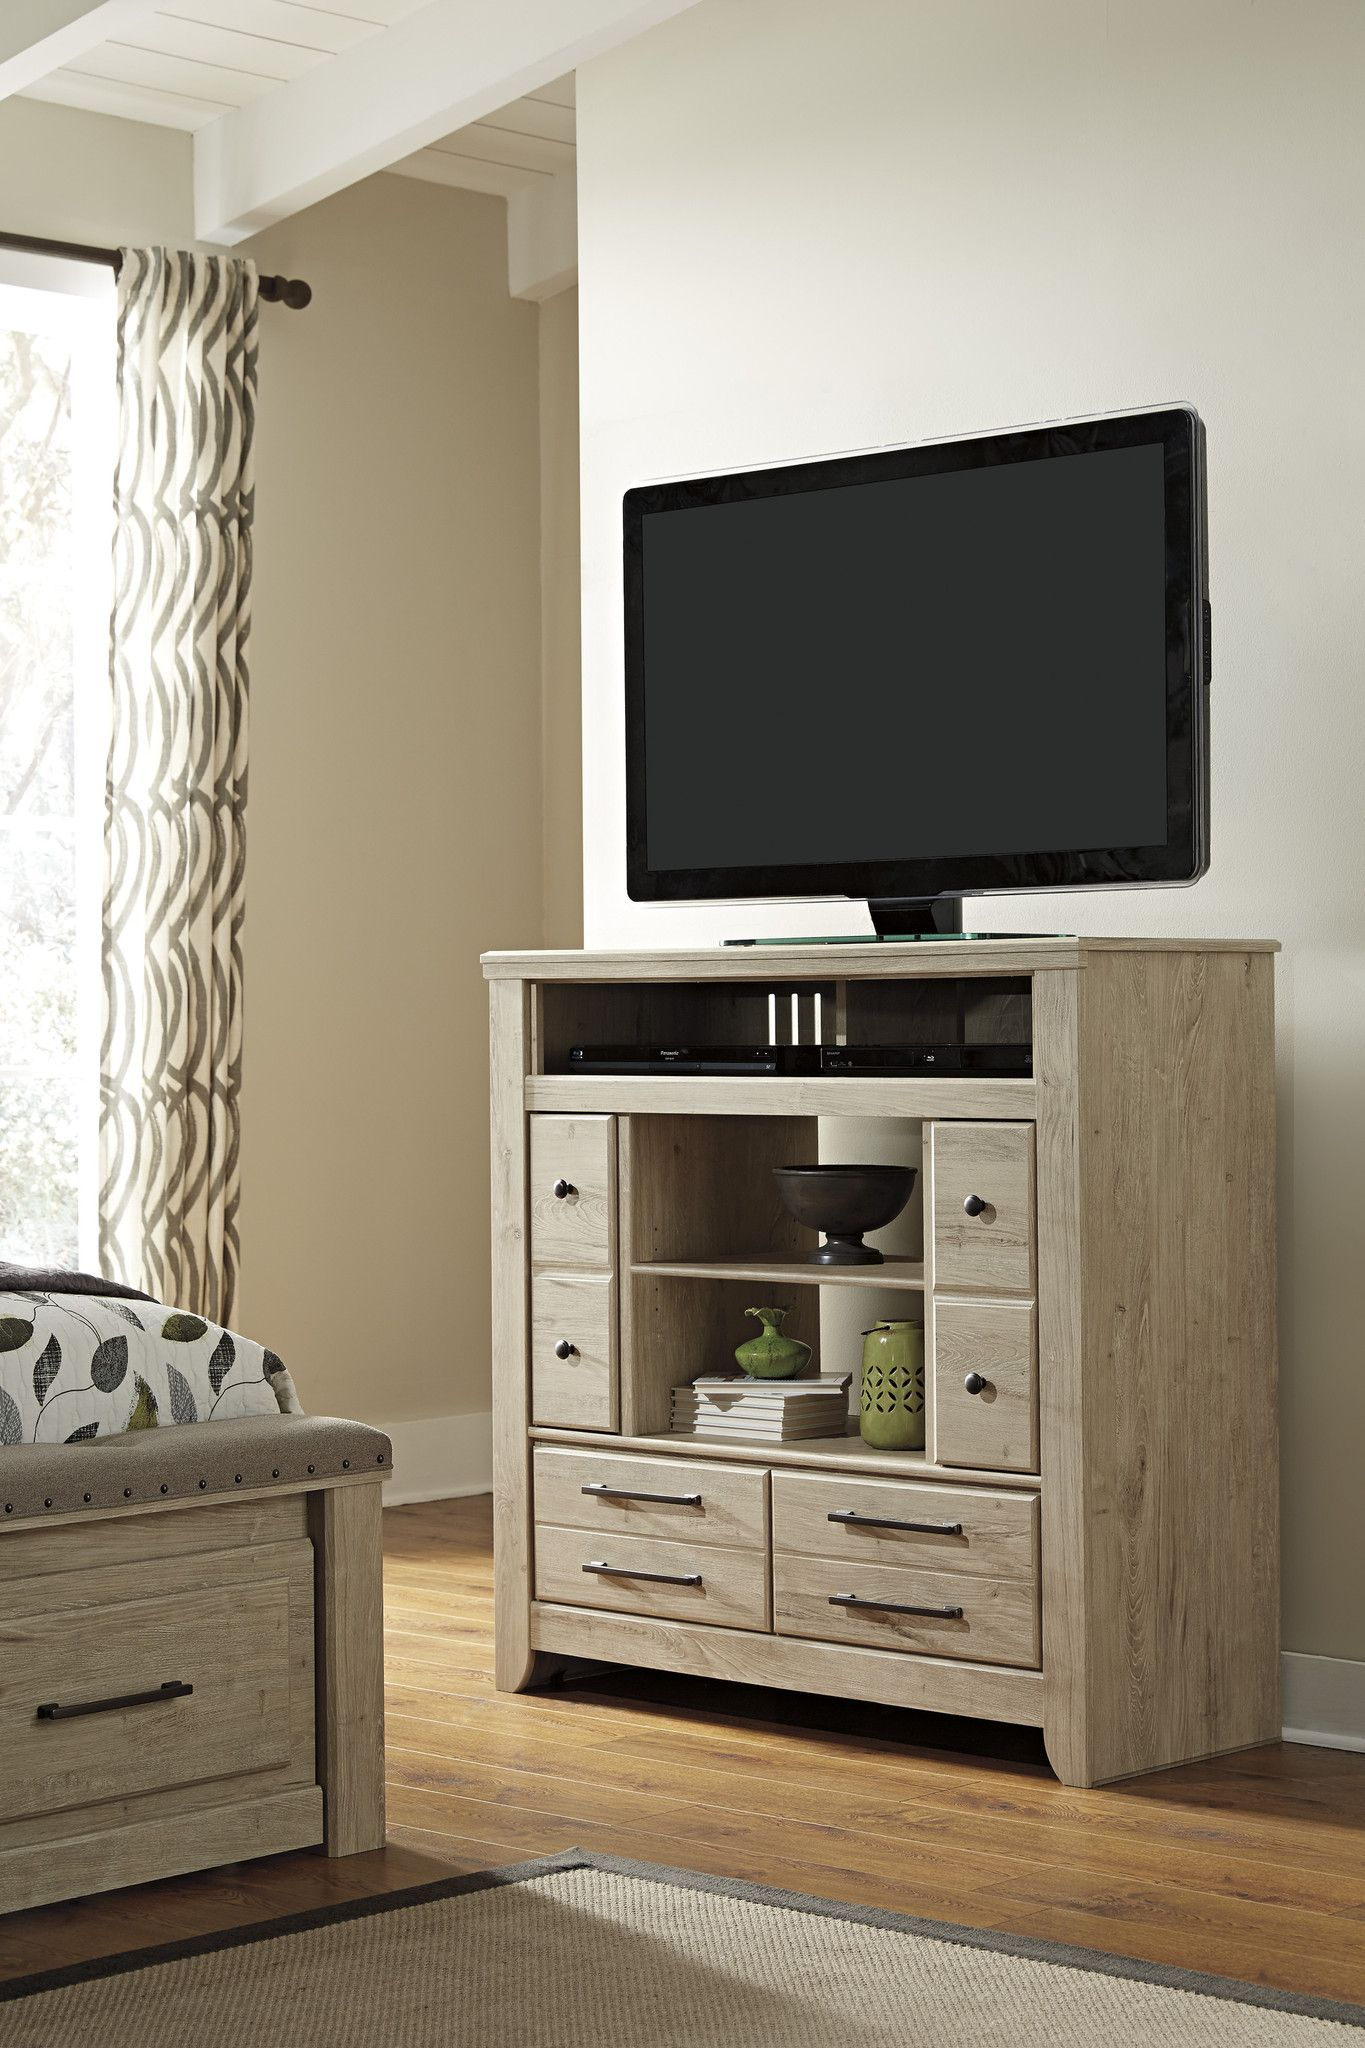 Ashley Furniture Annilynn Media Chest w/Fireplace Option B261-49 ...